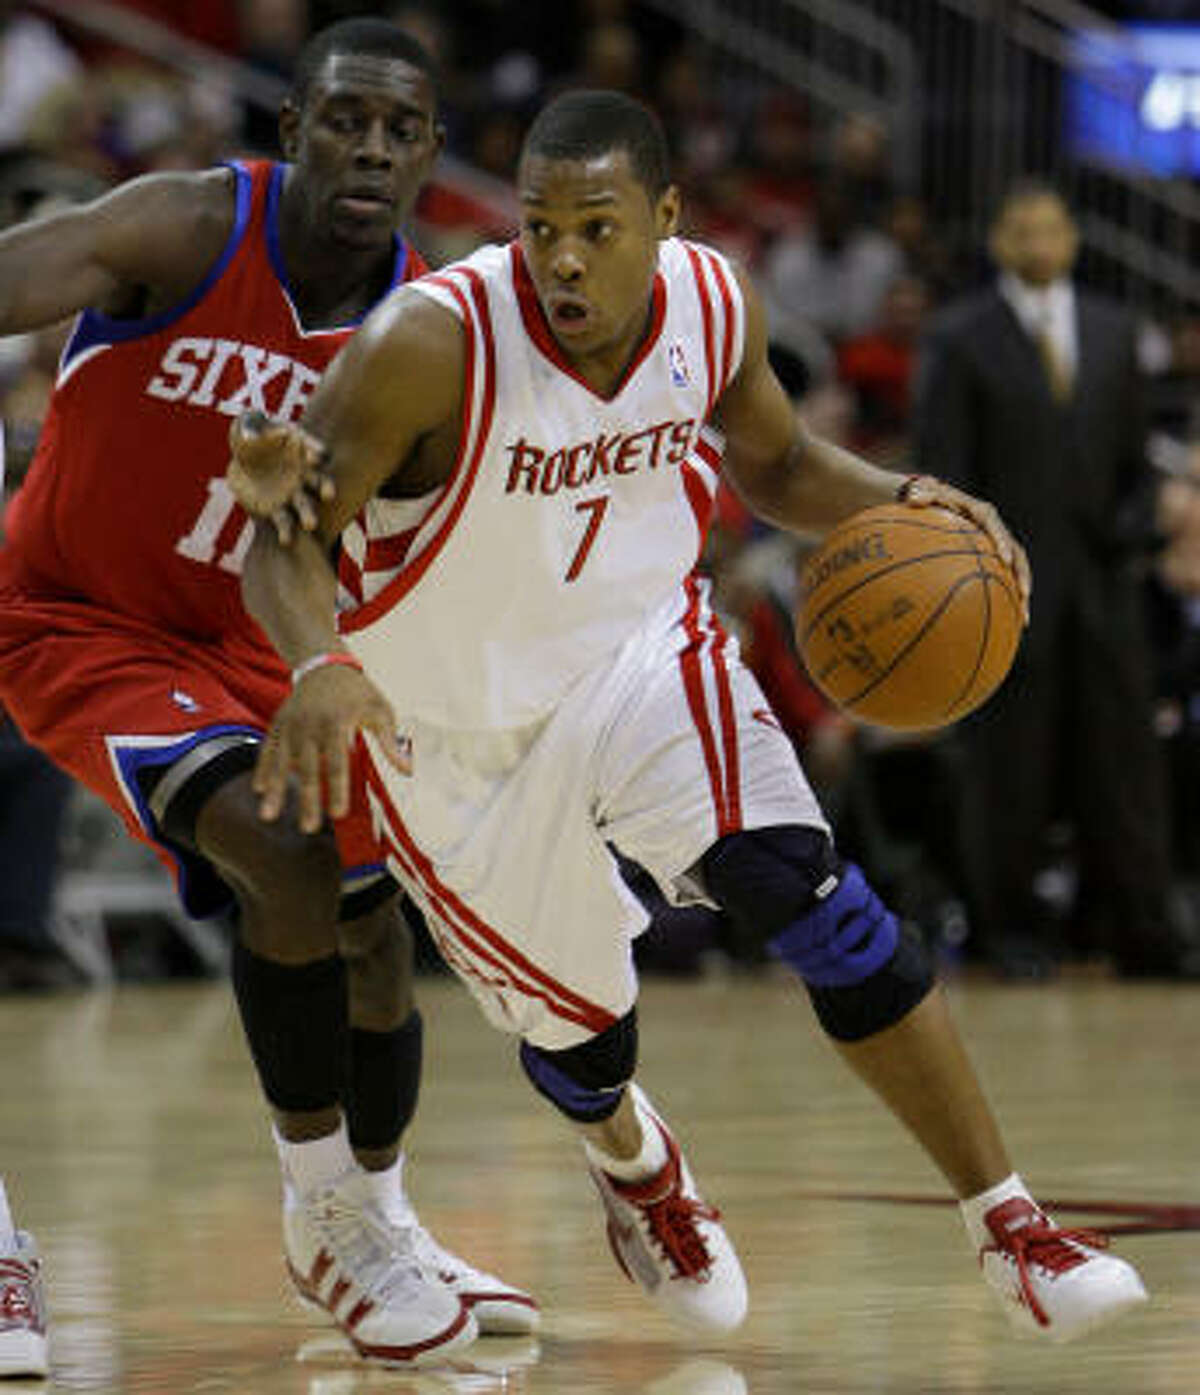 Rockets guard Kyle Lowry averaged 9.1 points and 4.5 assists last season.